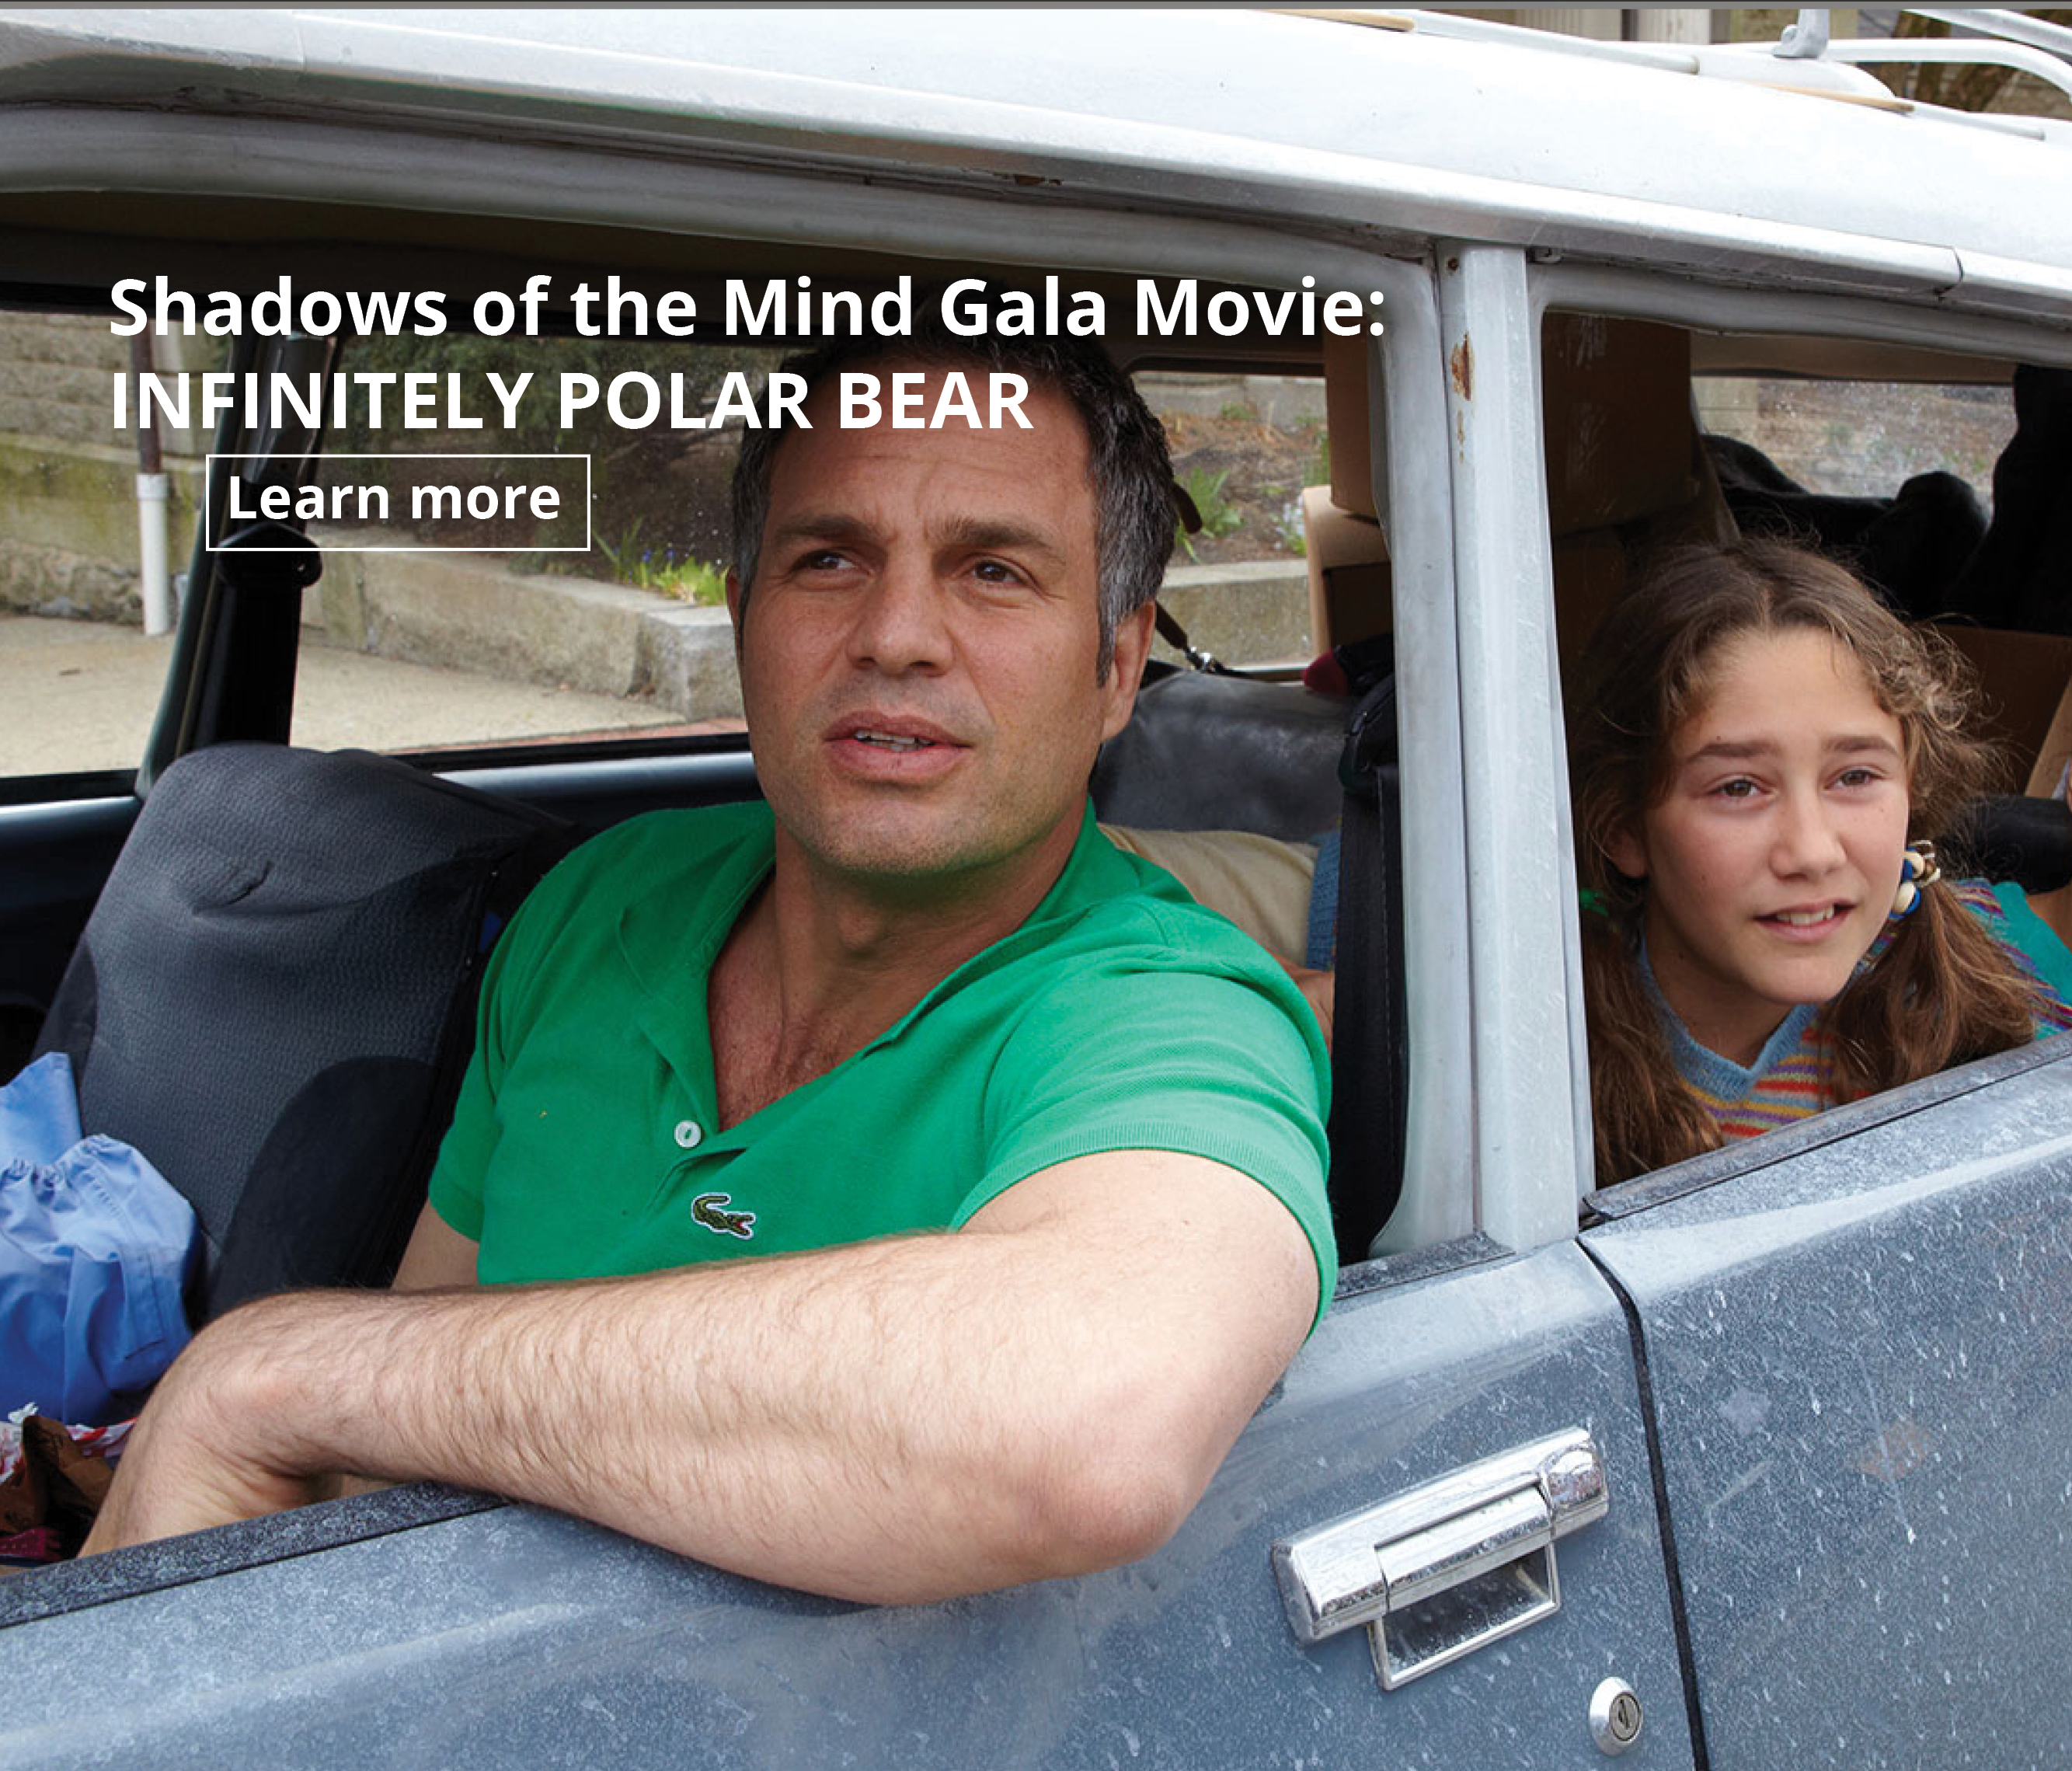 Shadows of the Mind Film Festival